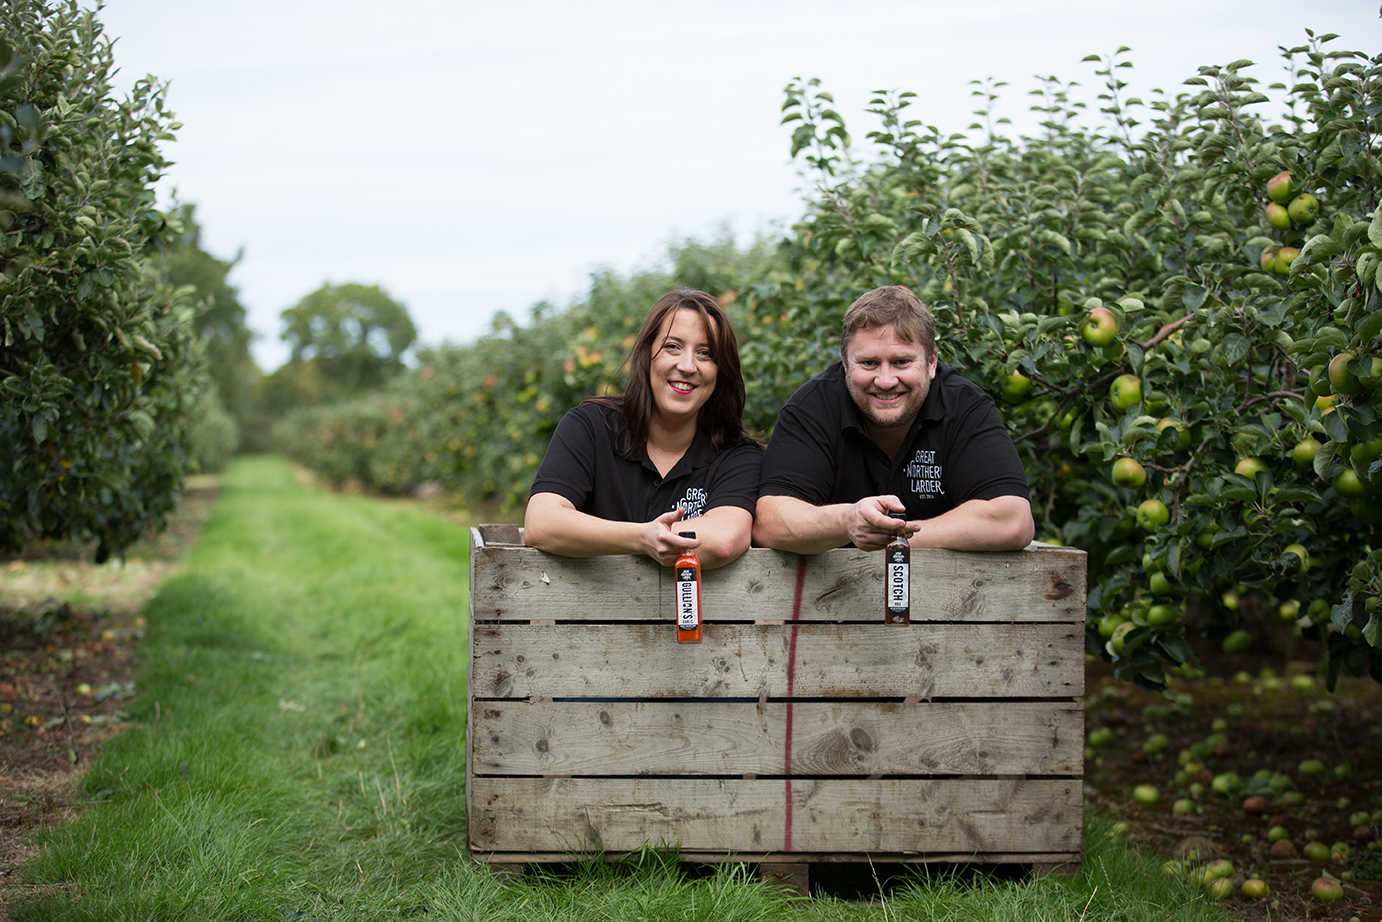 Business Portraits and Headshots by Jenny Callanan Photography, Great Northern Larder founders at apple orchard with their sauces